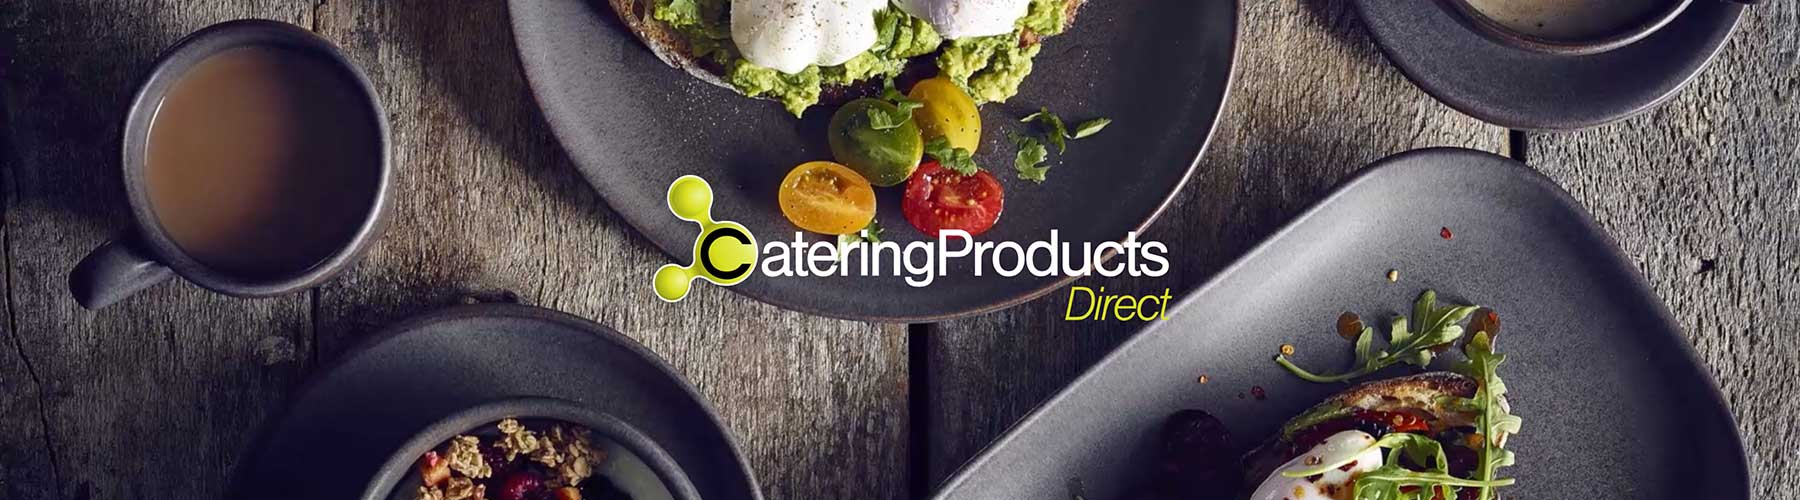 catering-products